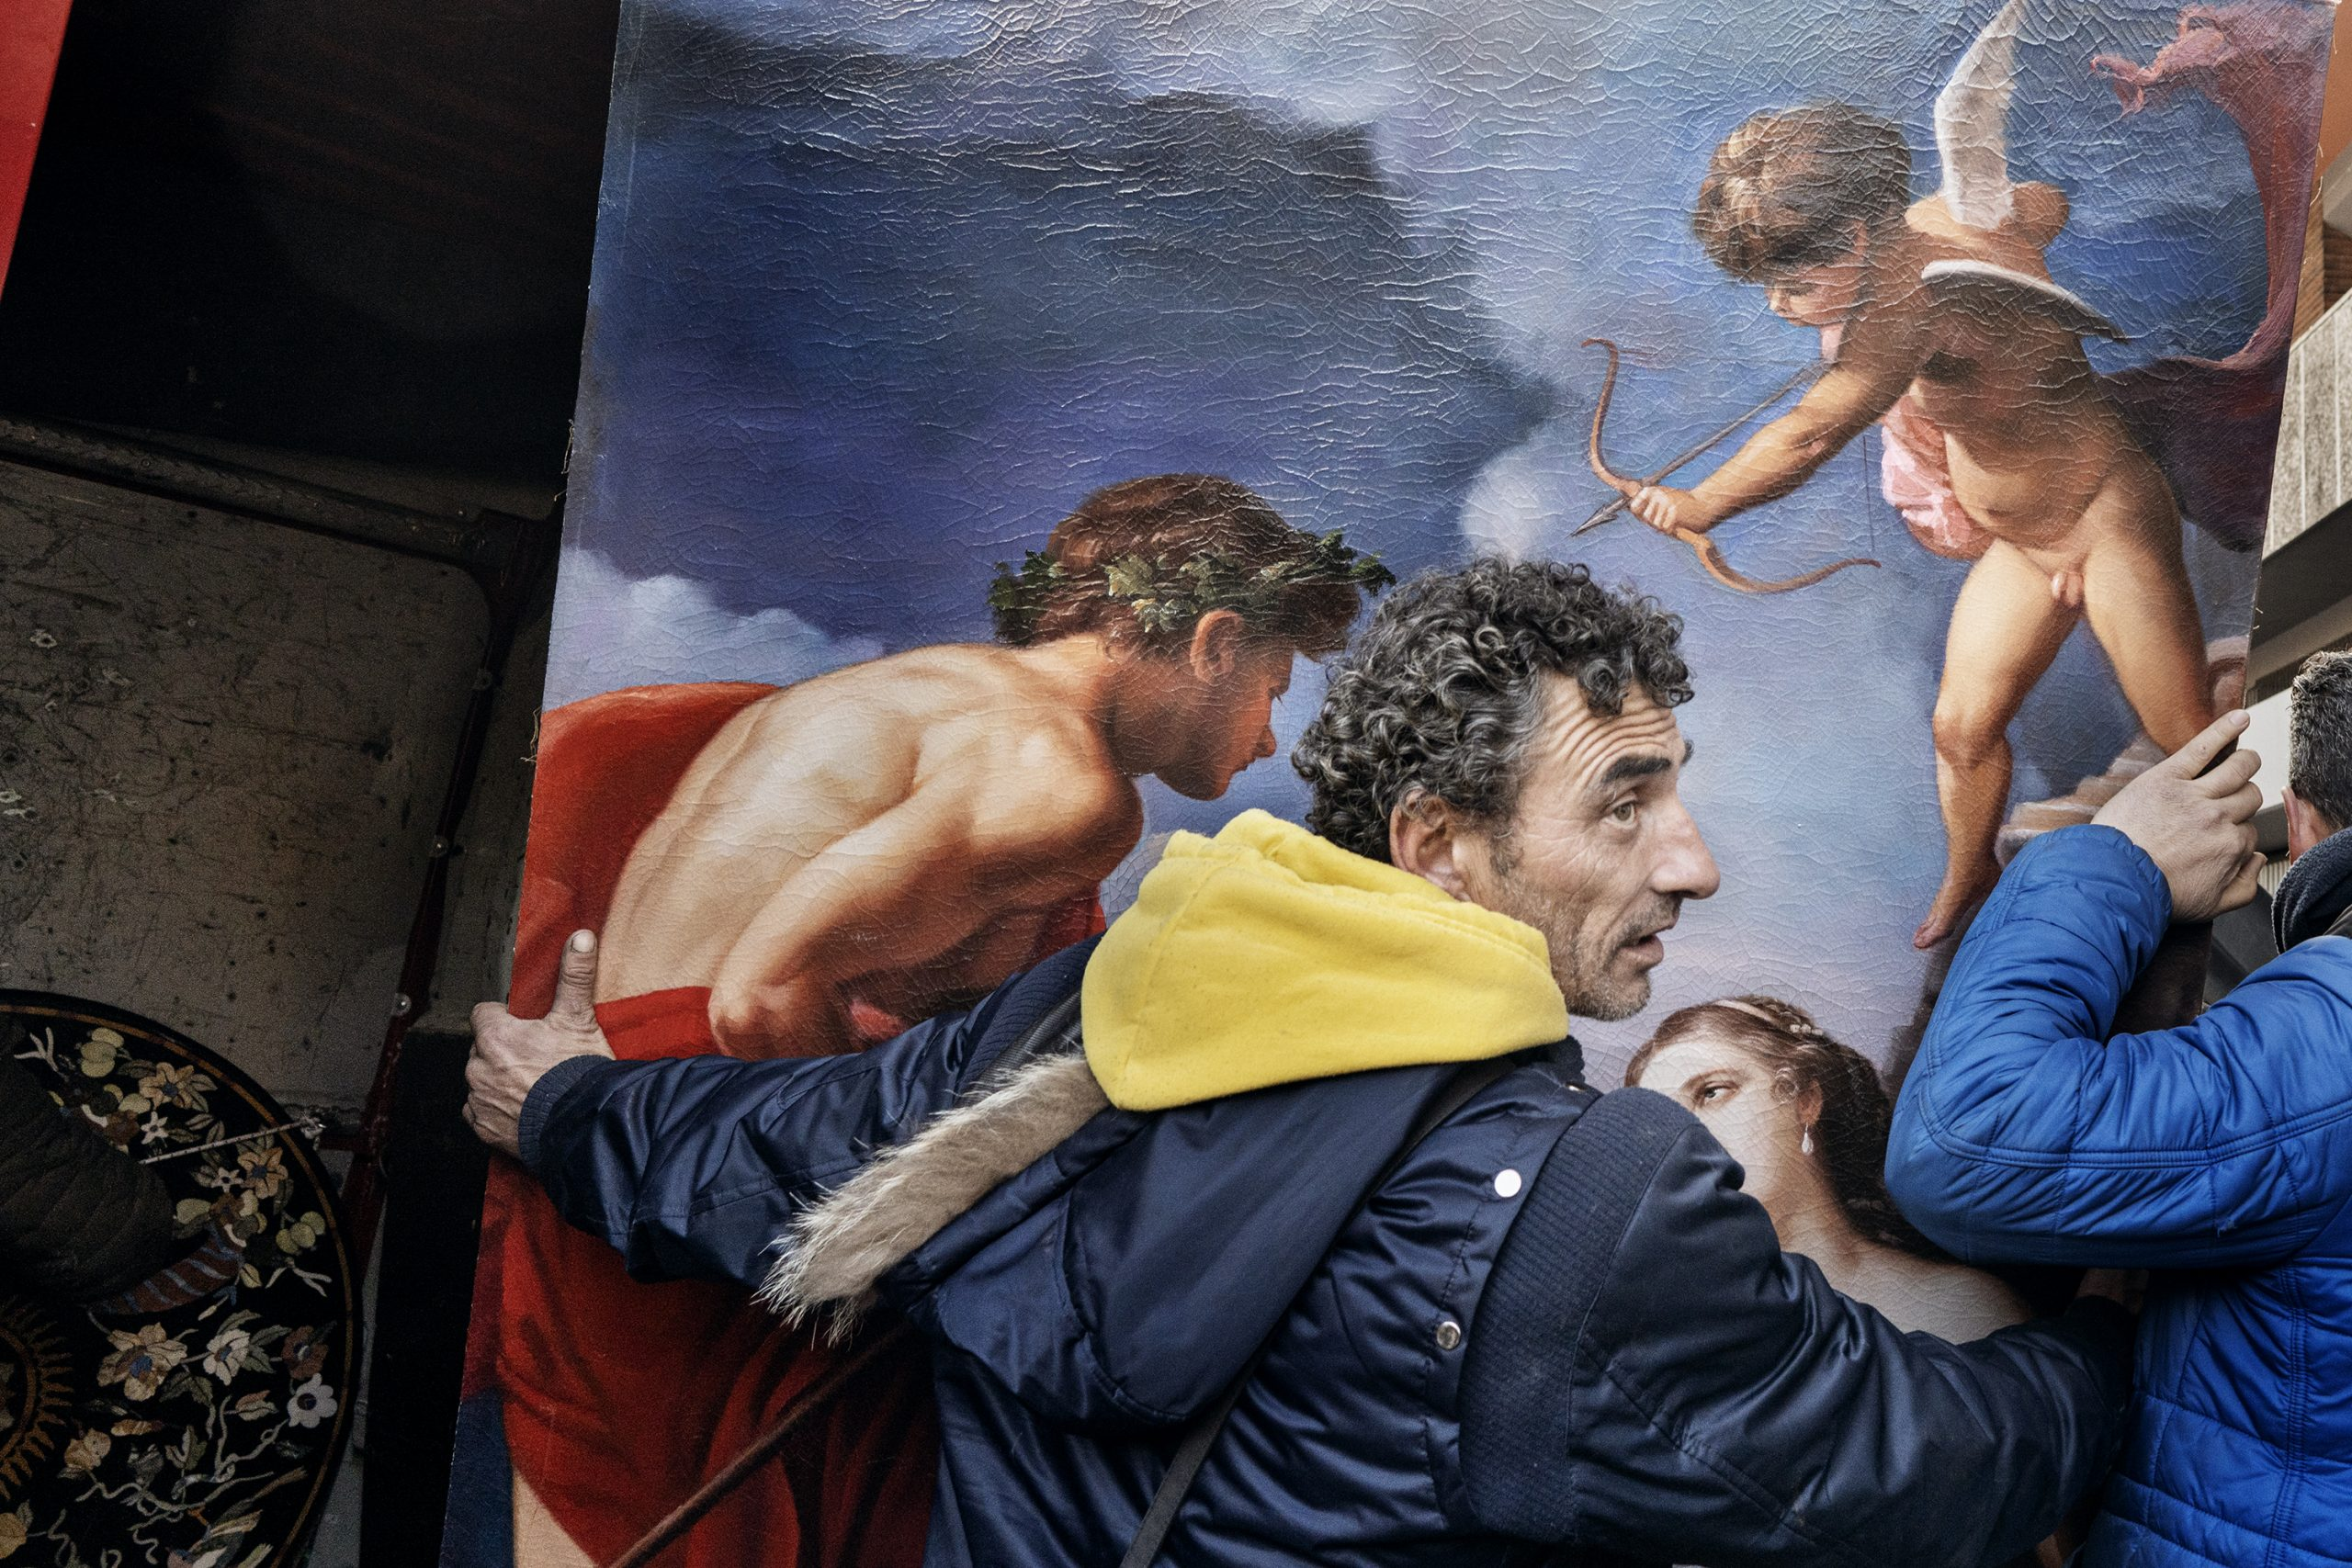 color street photography of a man holding a painting in Rome, Italy by Liliana Ranalletta